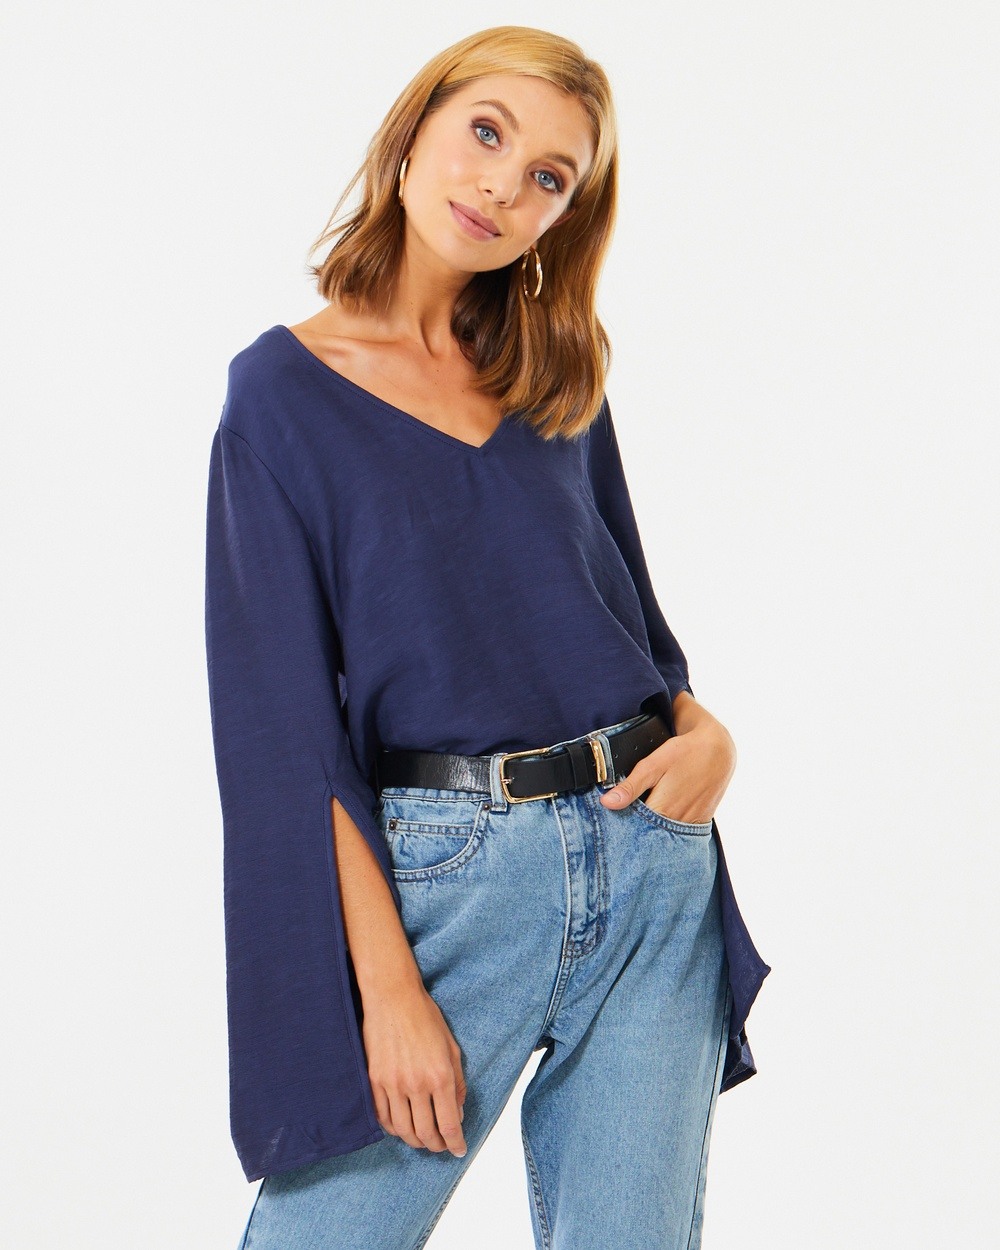 Calli Athea Split Sleeve Top Tops Navy Athea Split-Sleeve Top